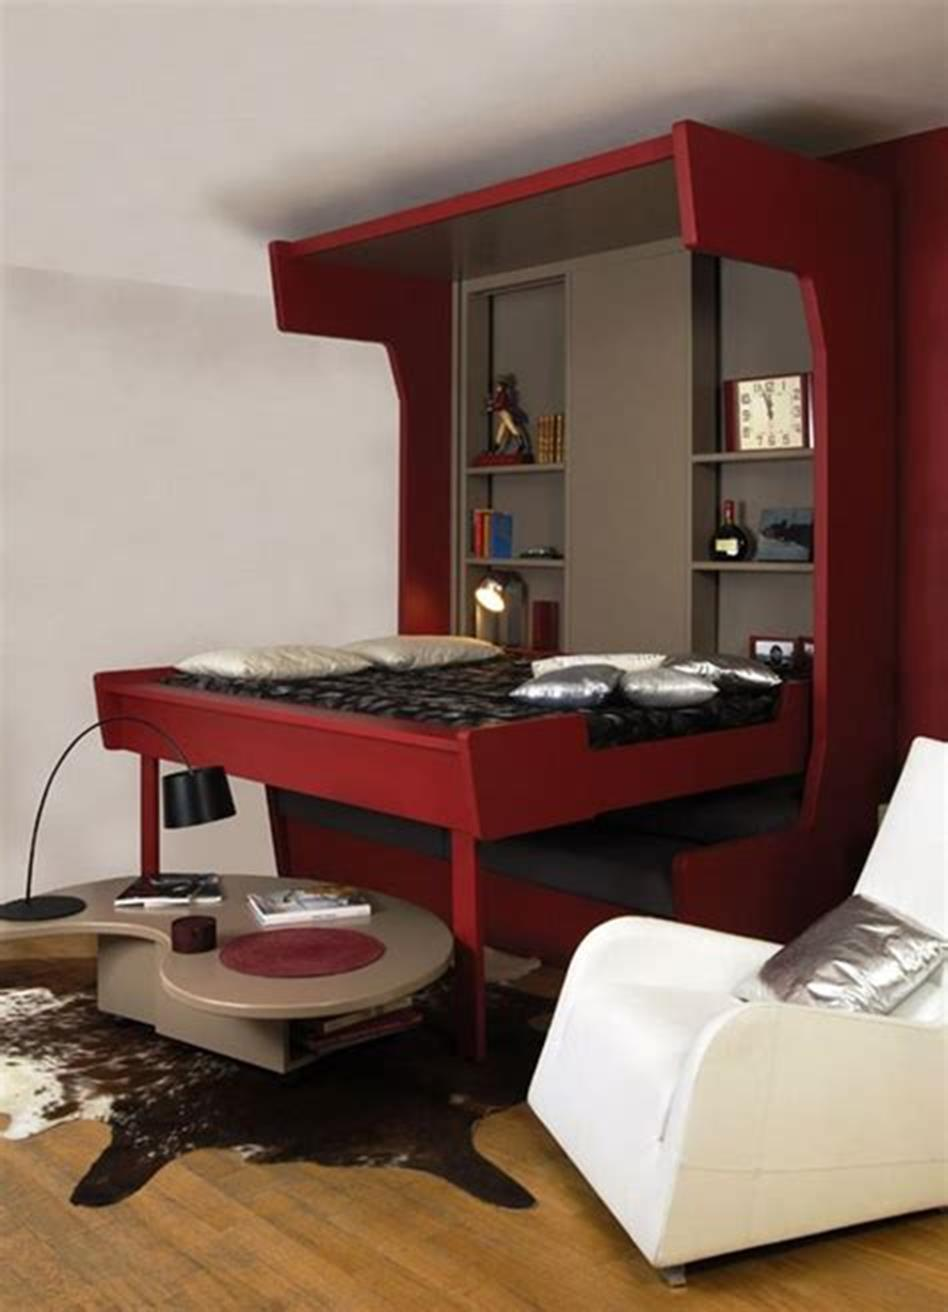 50 Amazing Ideas Furniture for Small Spaces Youll Love 35